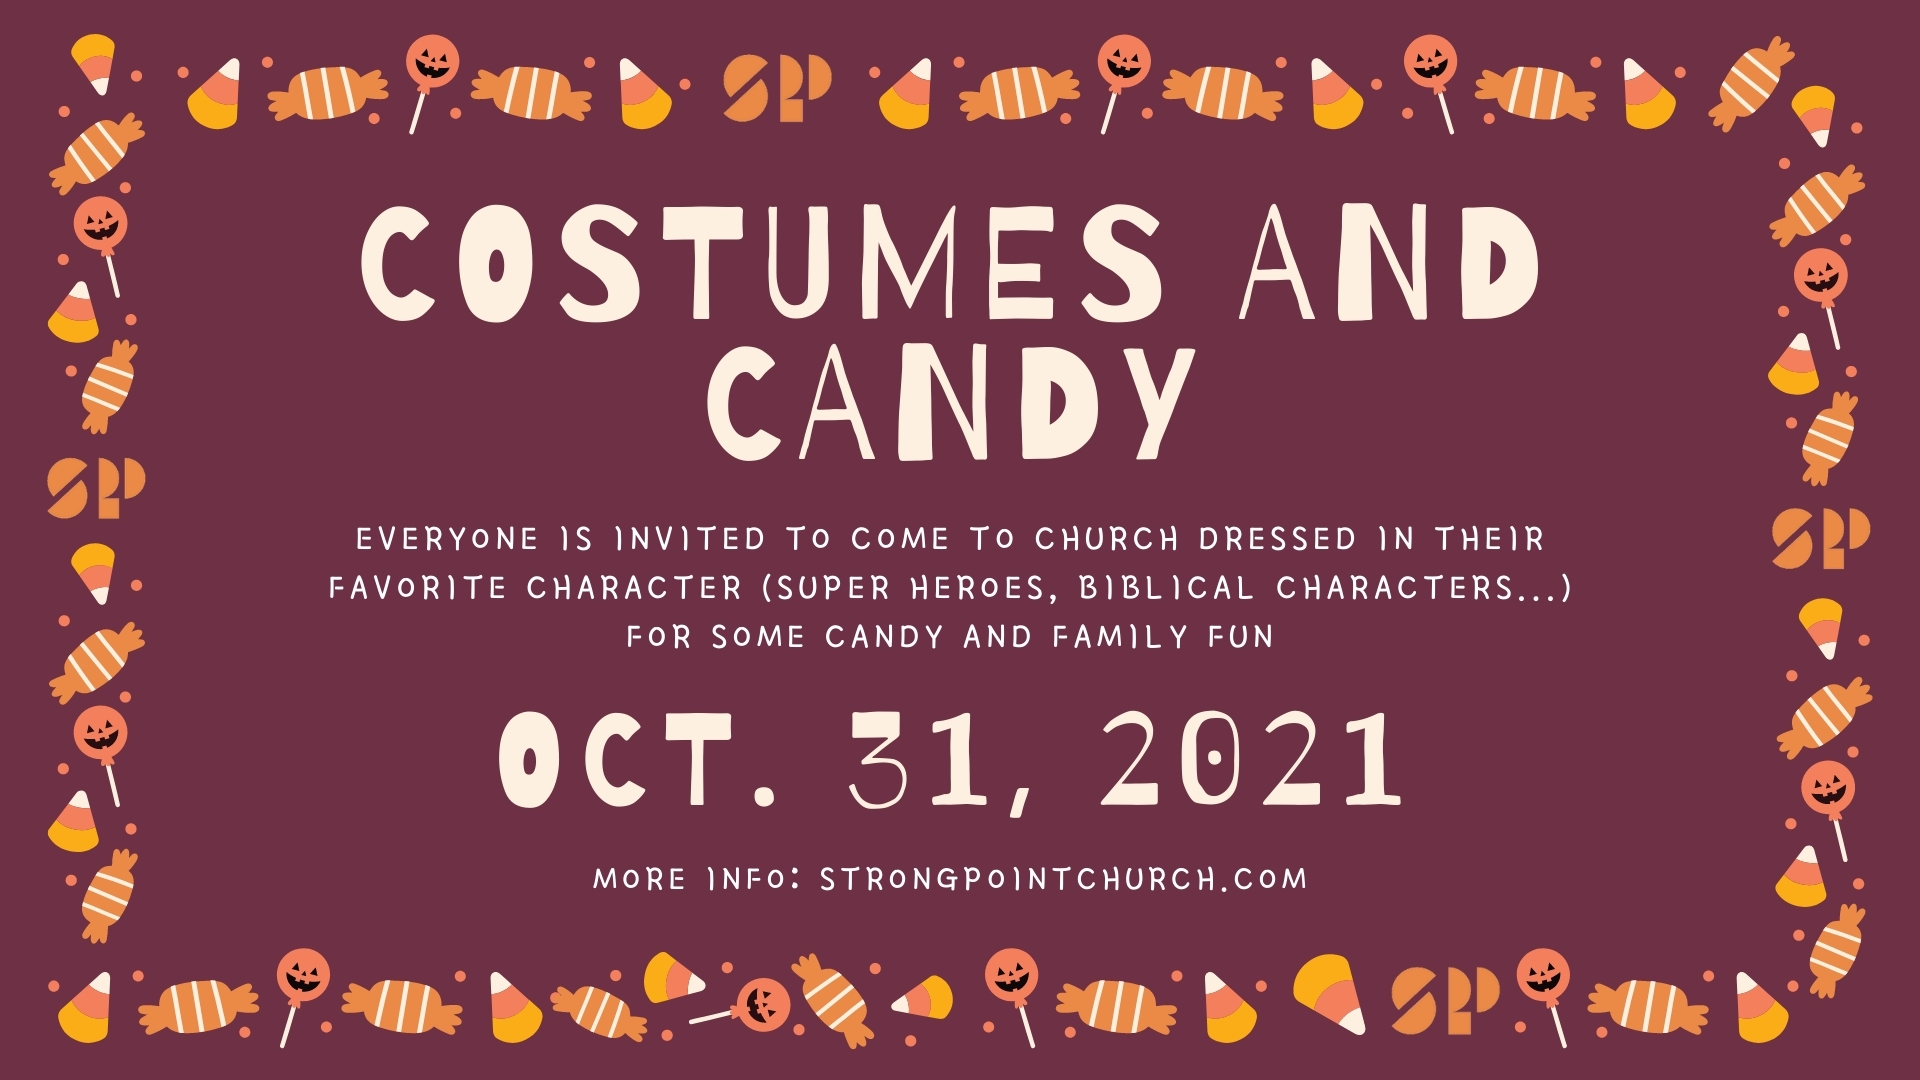 Costumes and Candy